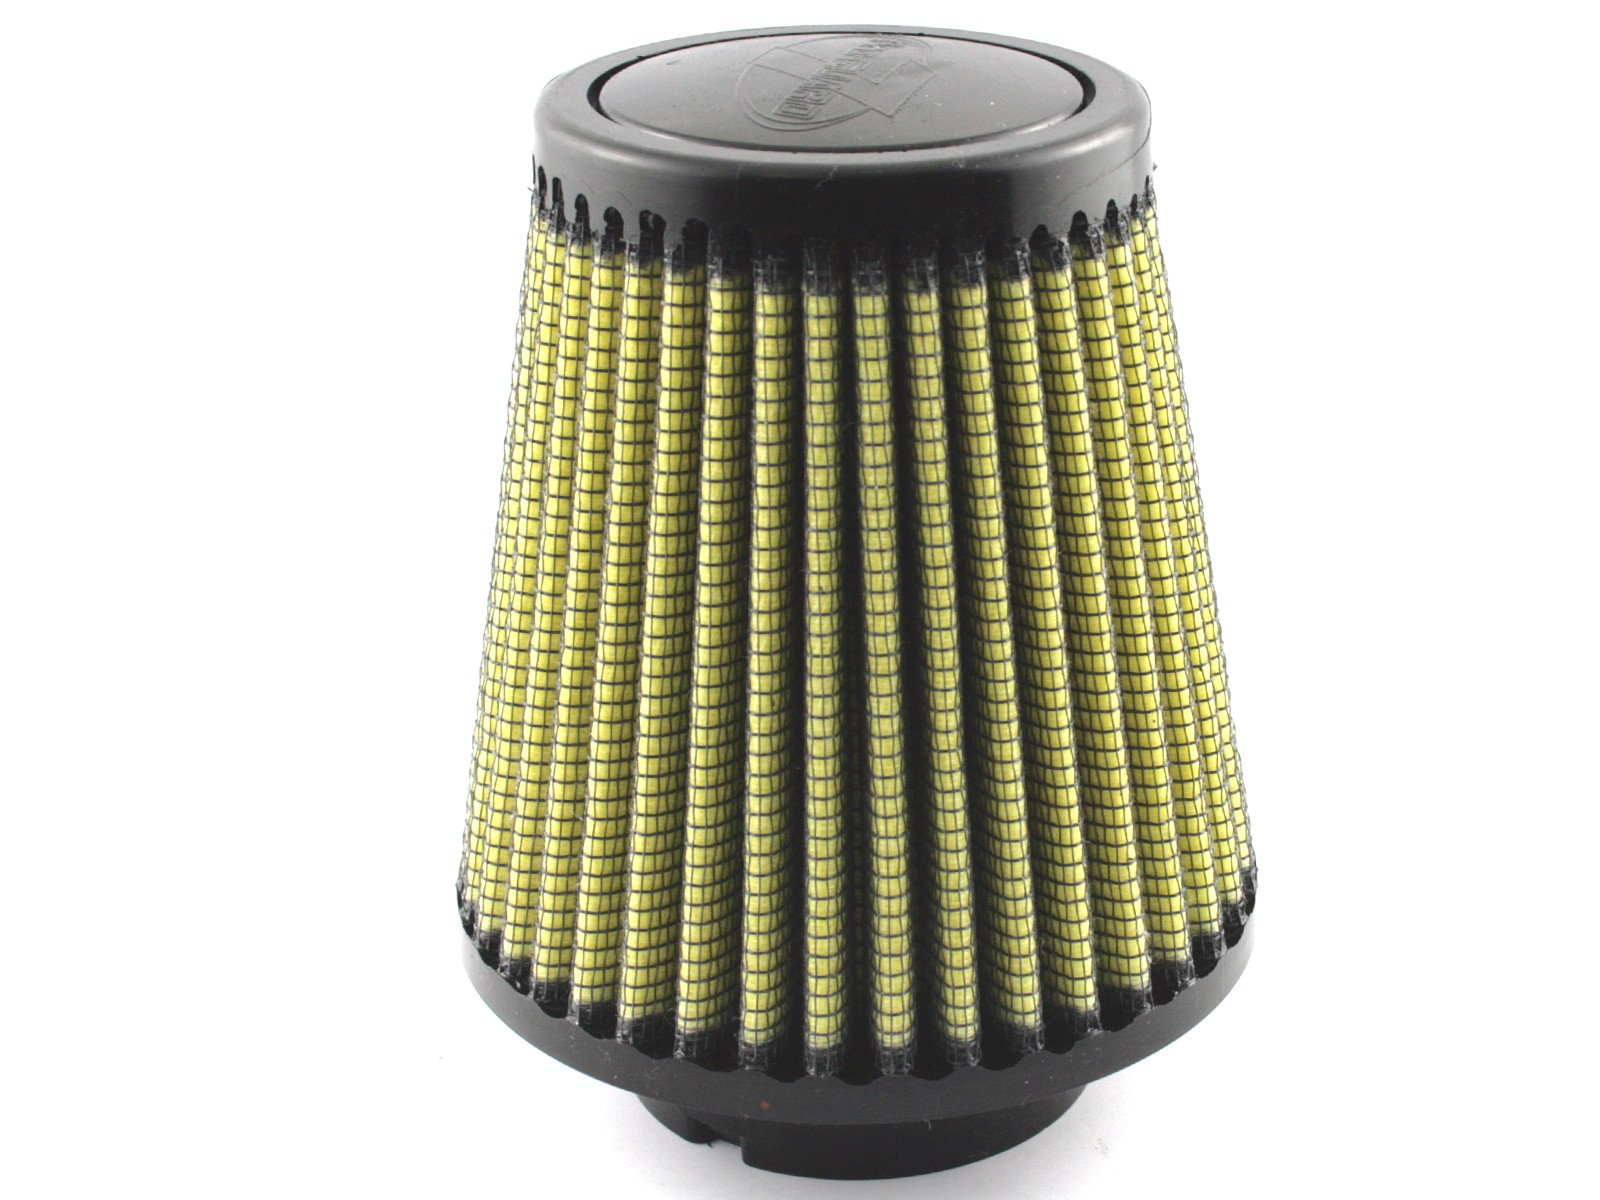 aFe POWER 87-10037 Aries Powersports Pro GUARD7 Air Filter